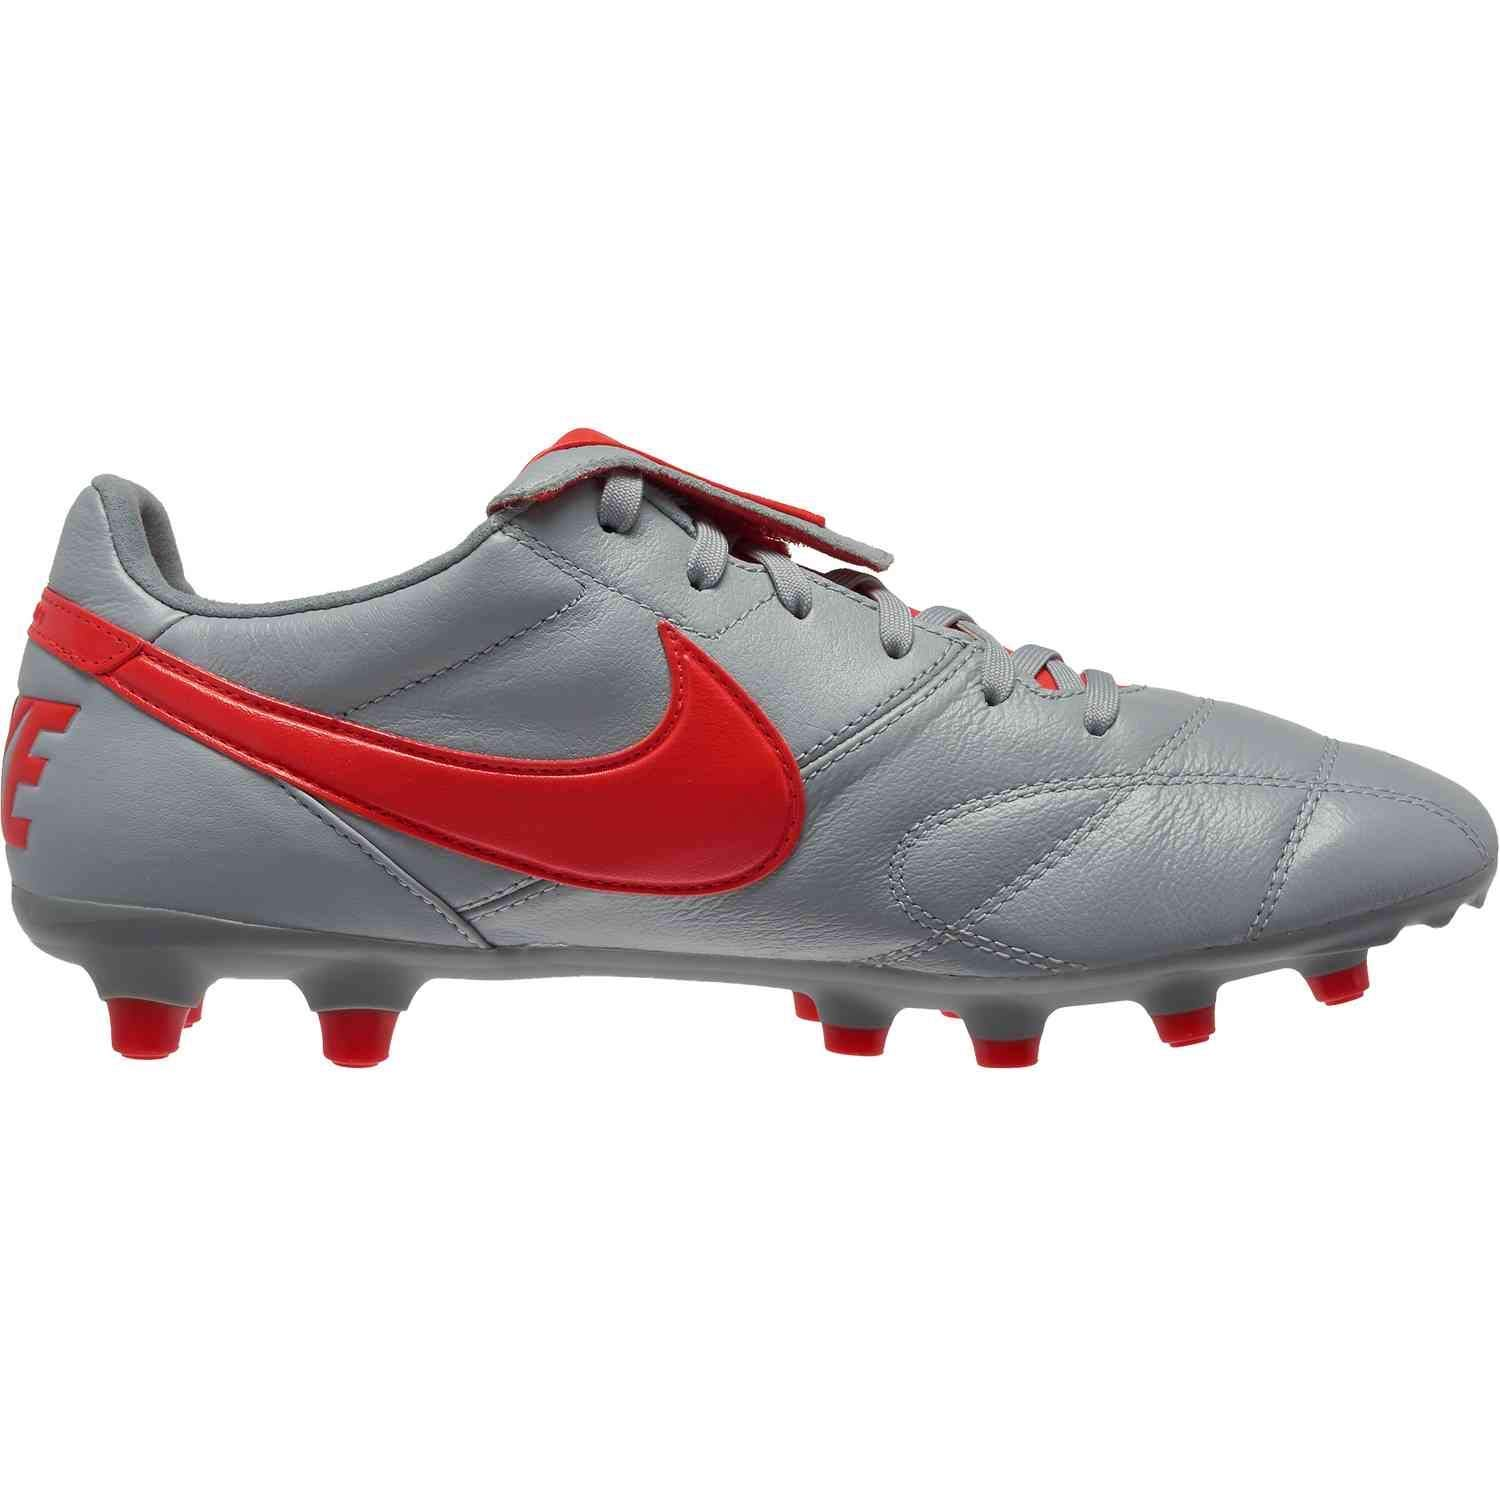 785b16e367f7 Amazon.com | Nike Mens The Premier Soccer Cleat | Soccer